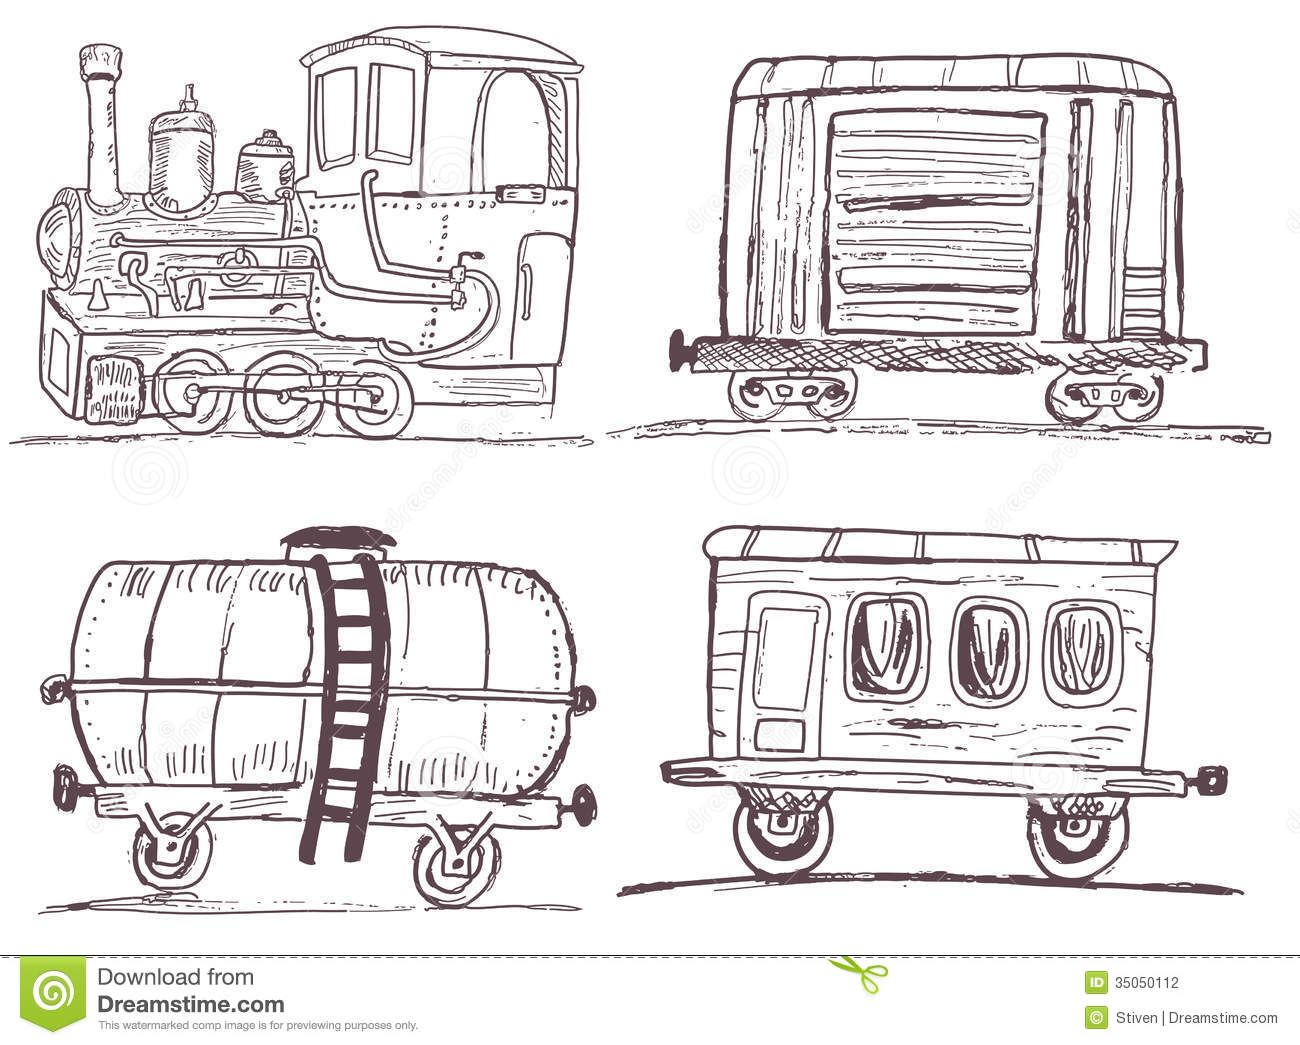 Vintage Train With Wagons Sketch Stock Vector